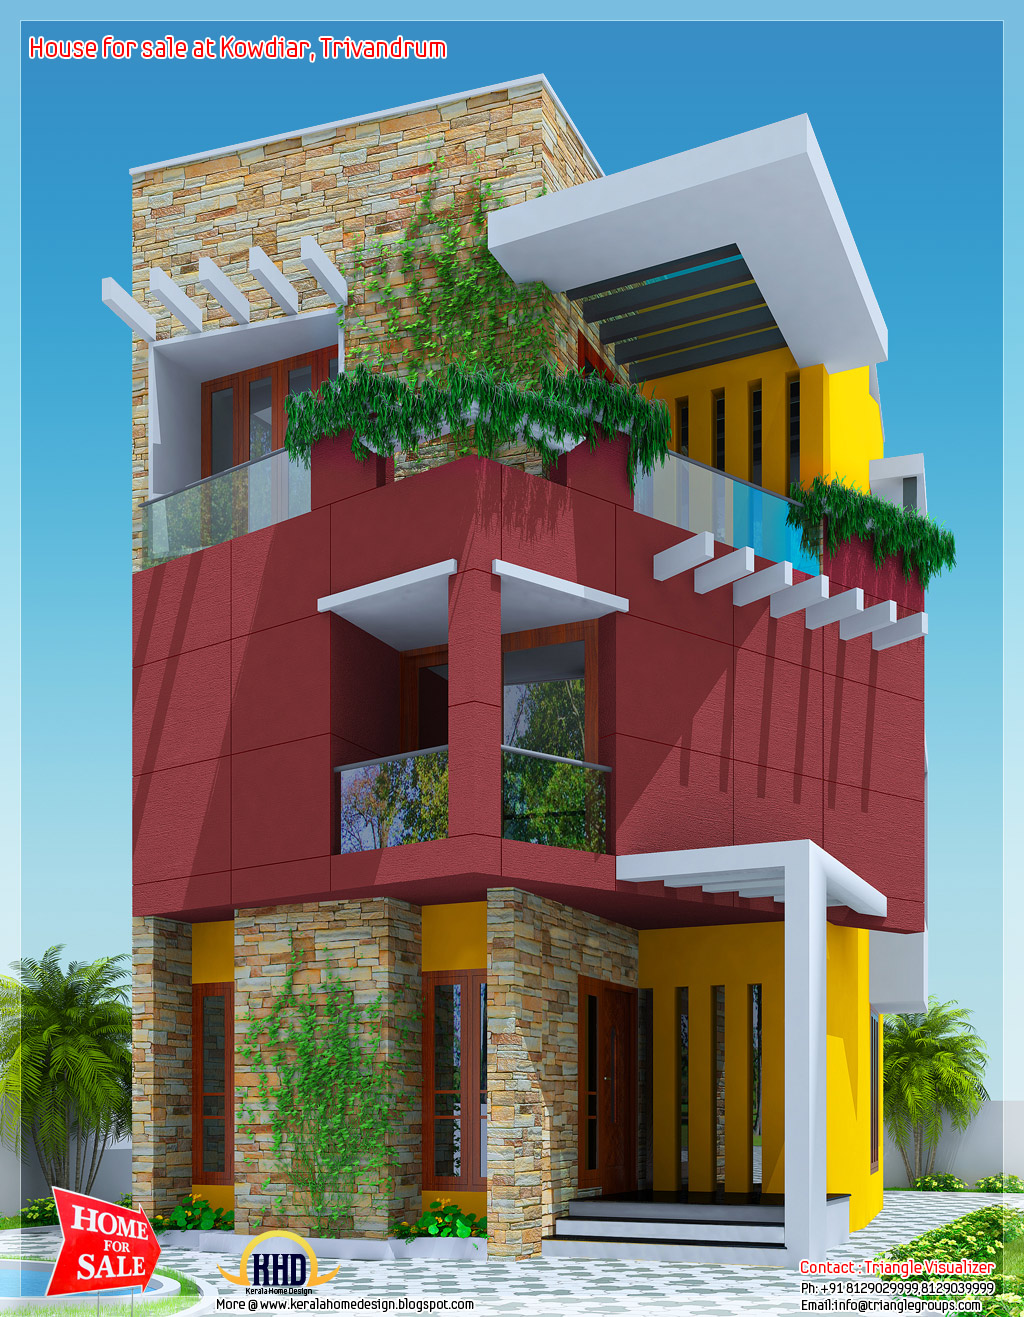 3 Floor House For Sale At Kowdiar Trivandrum Home Appliance